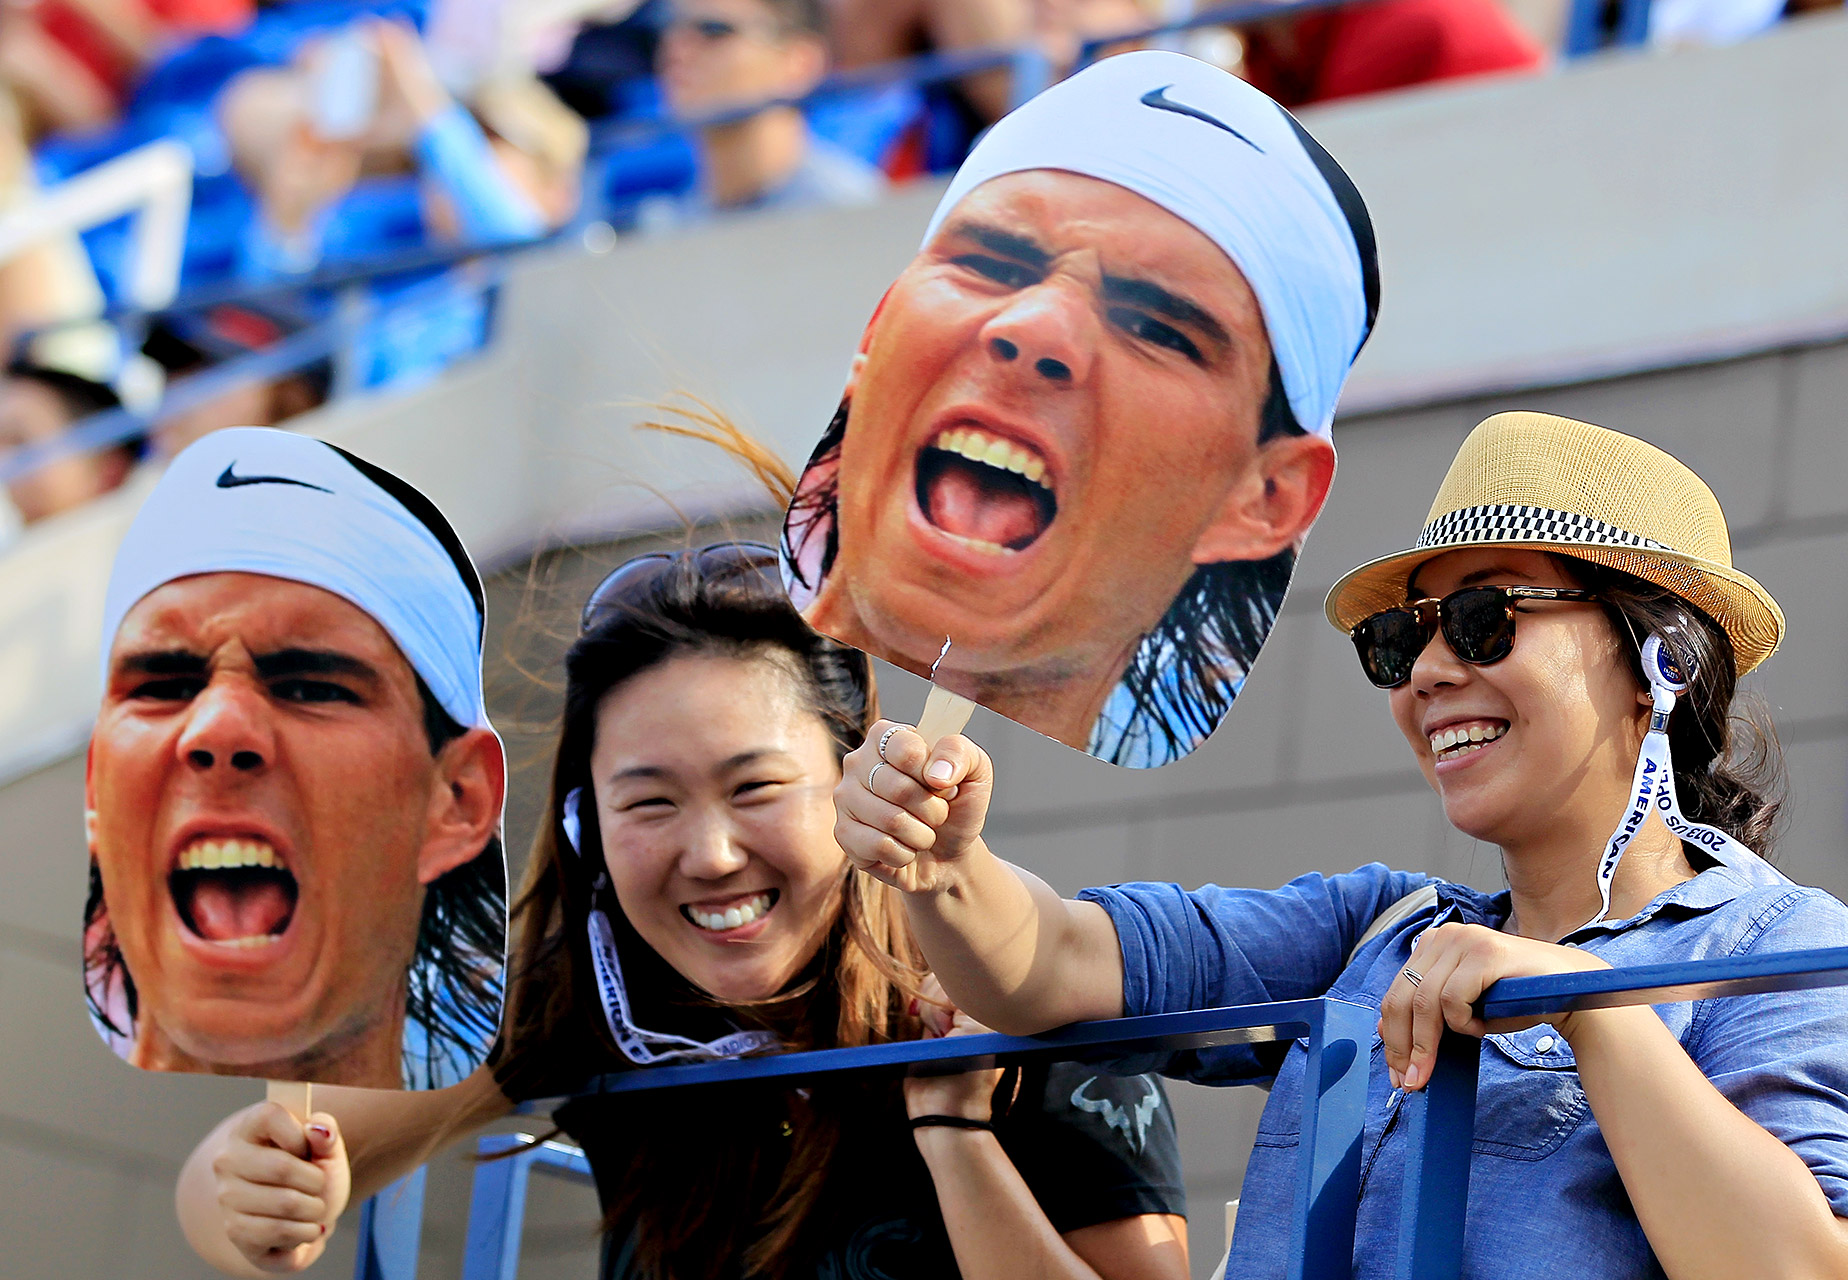 And Even More Nadal Fans